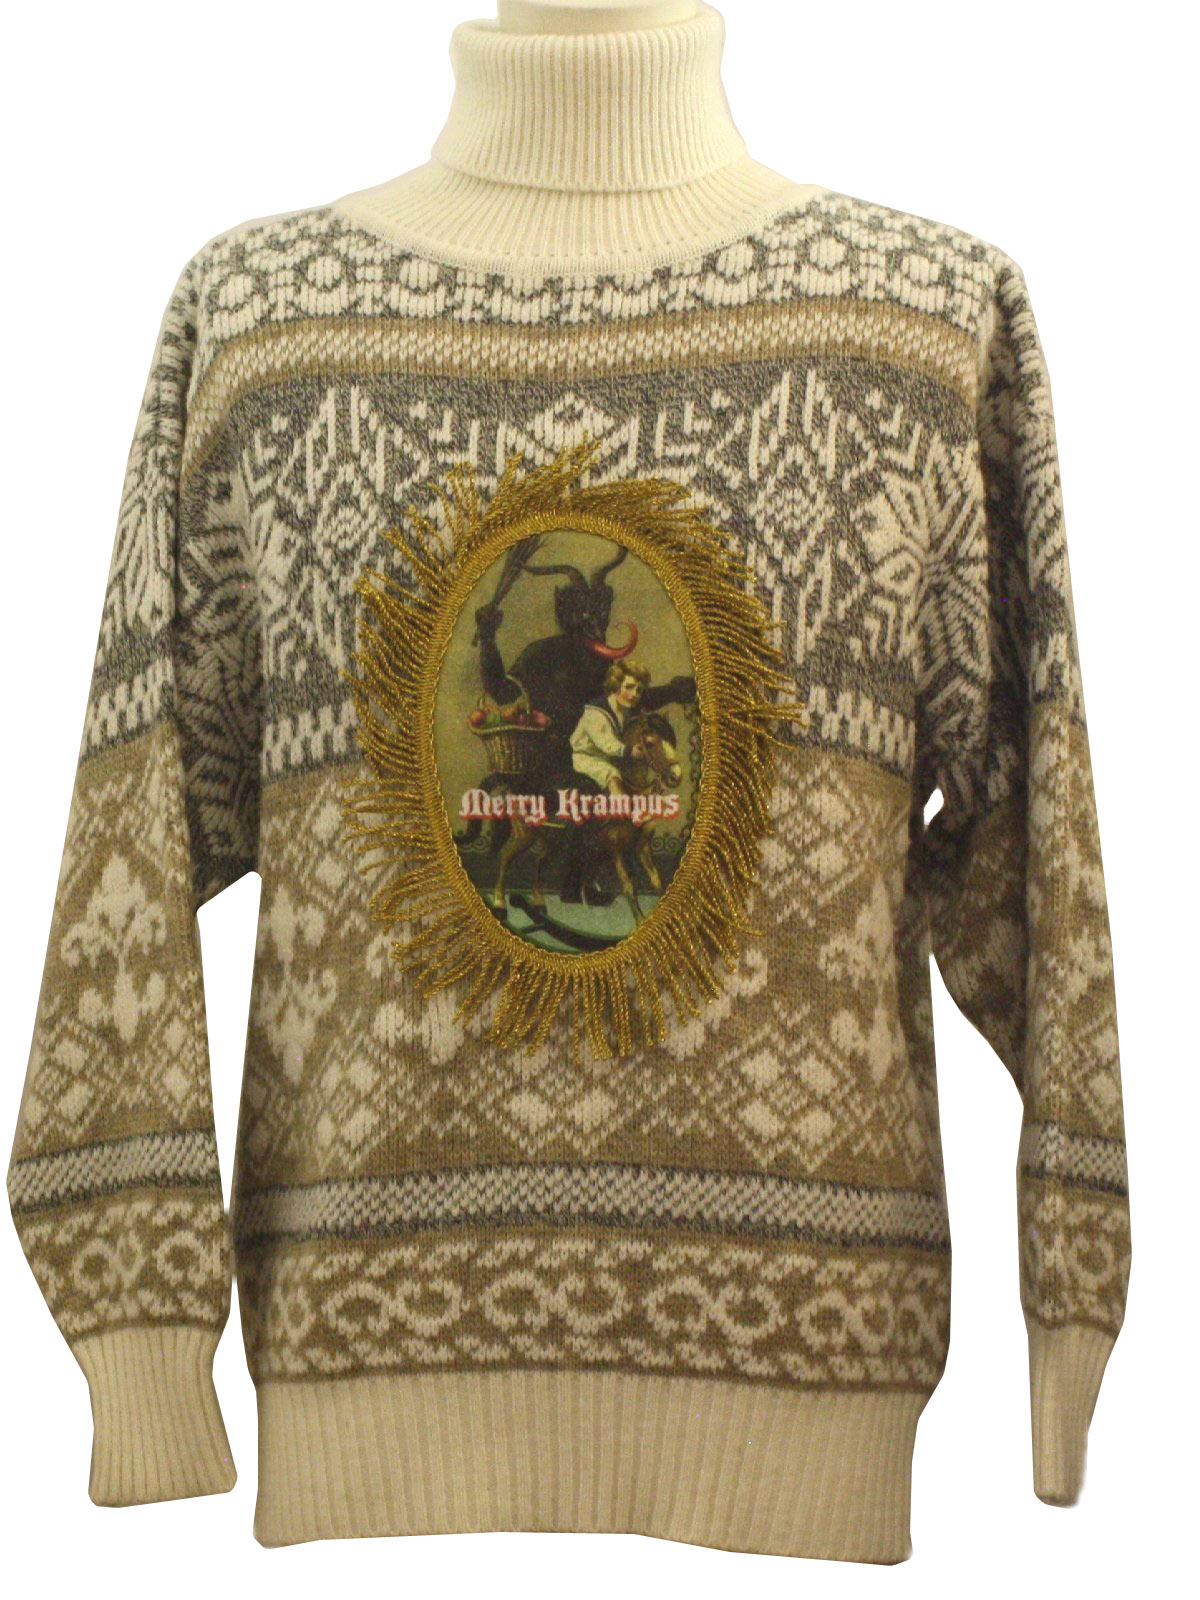 Retro 80 S Ugly Krampus Christmas Sweater 80s Authentic